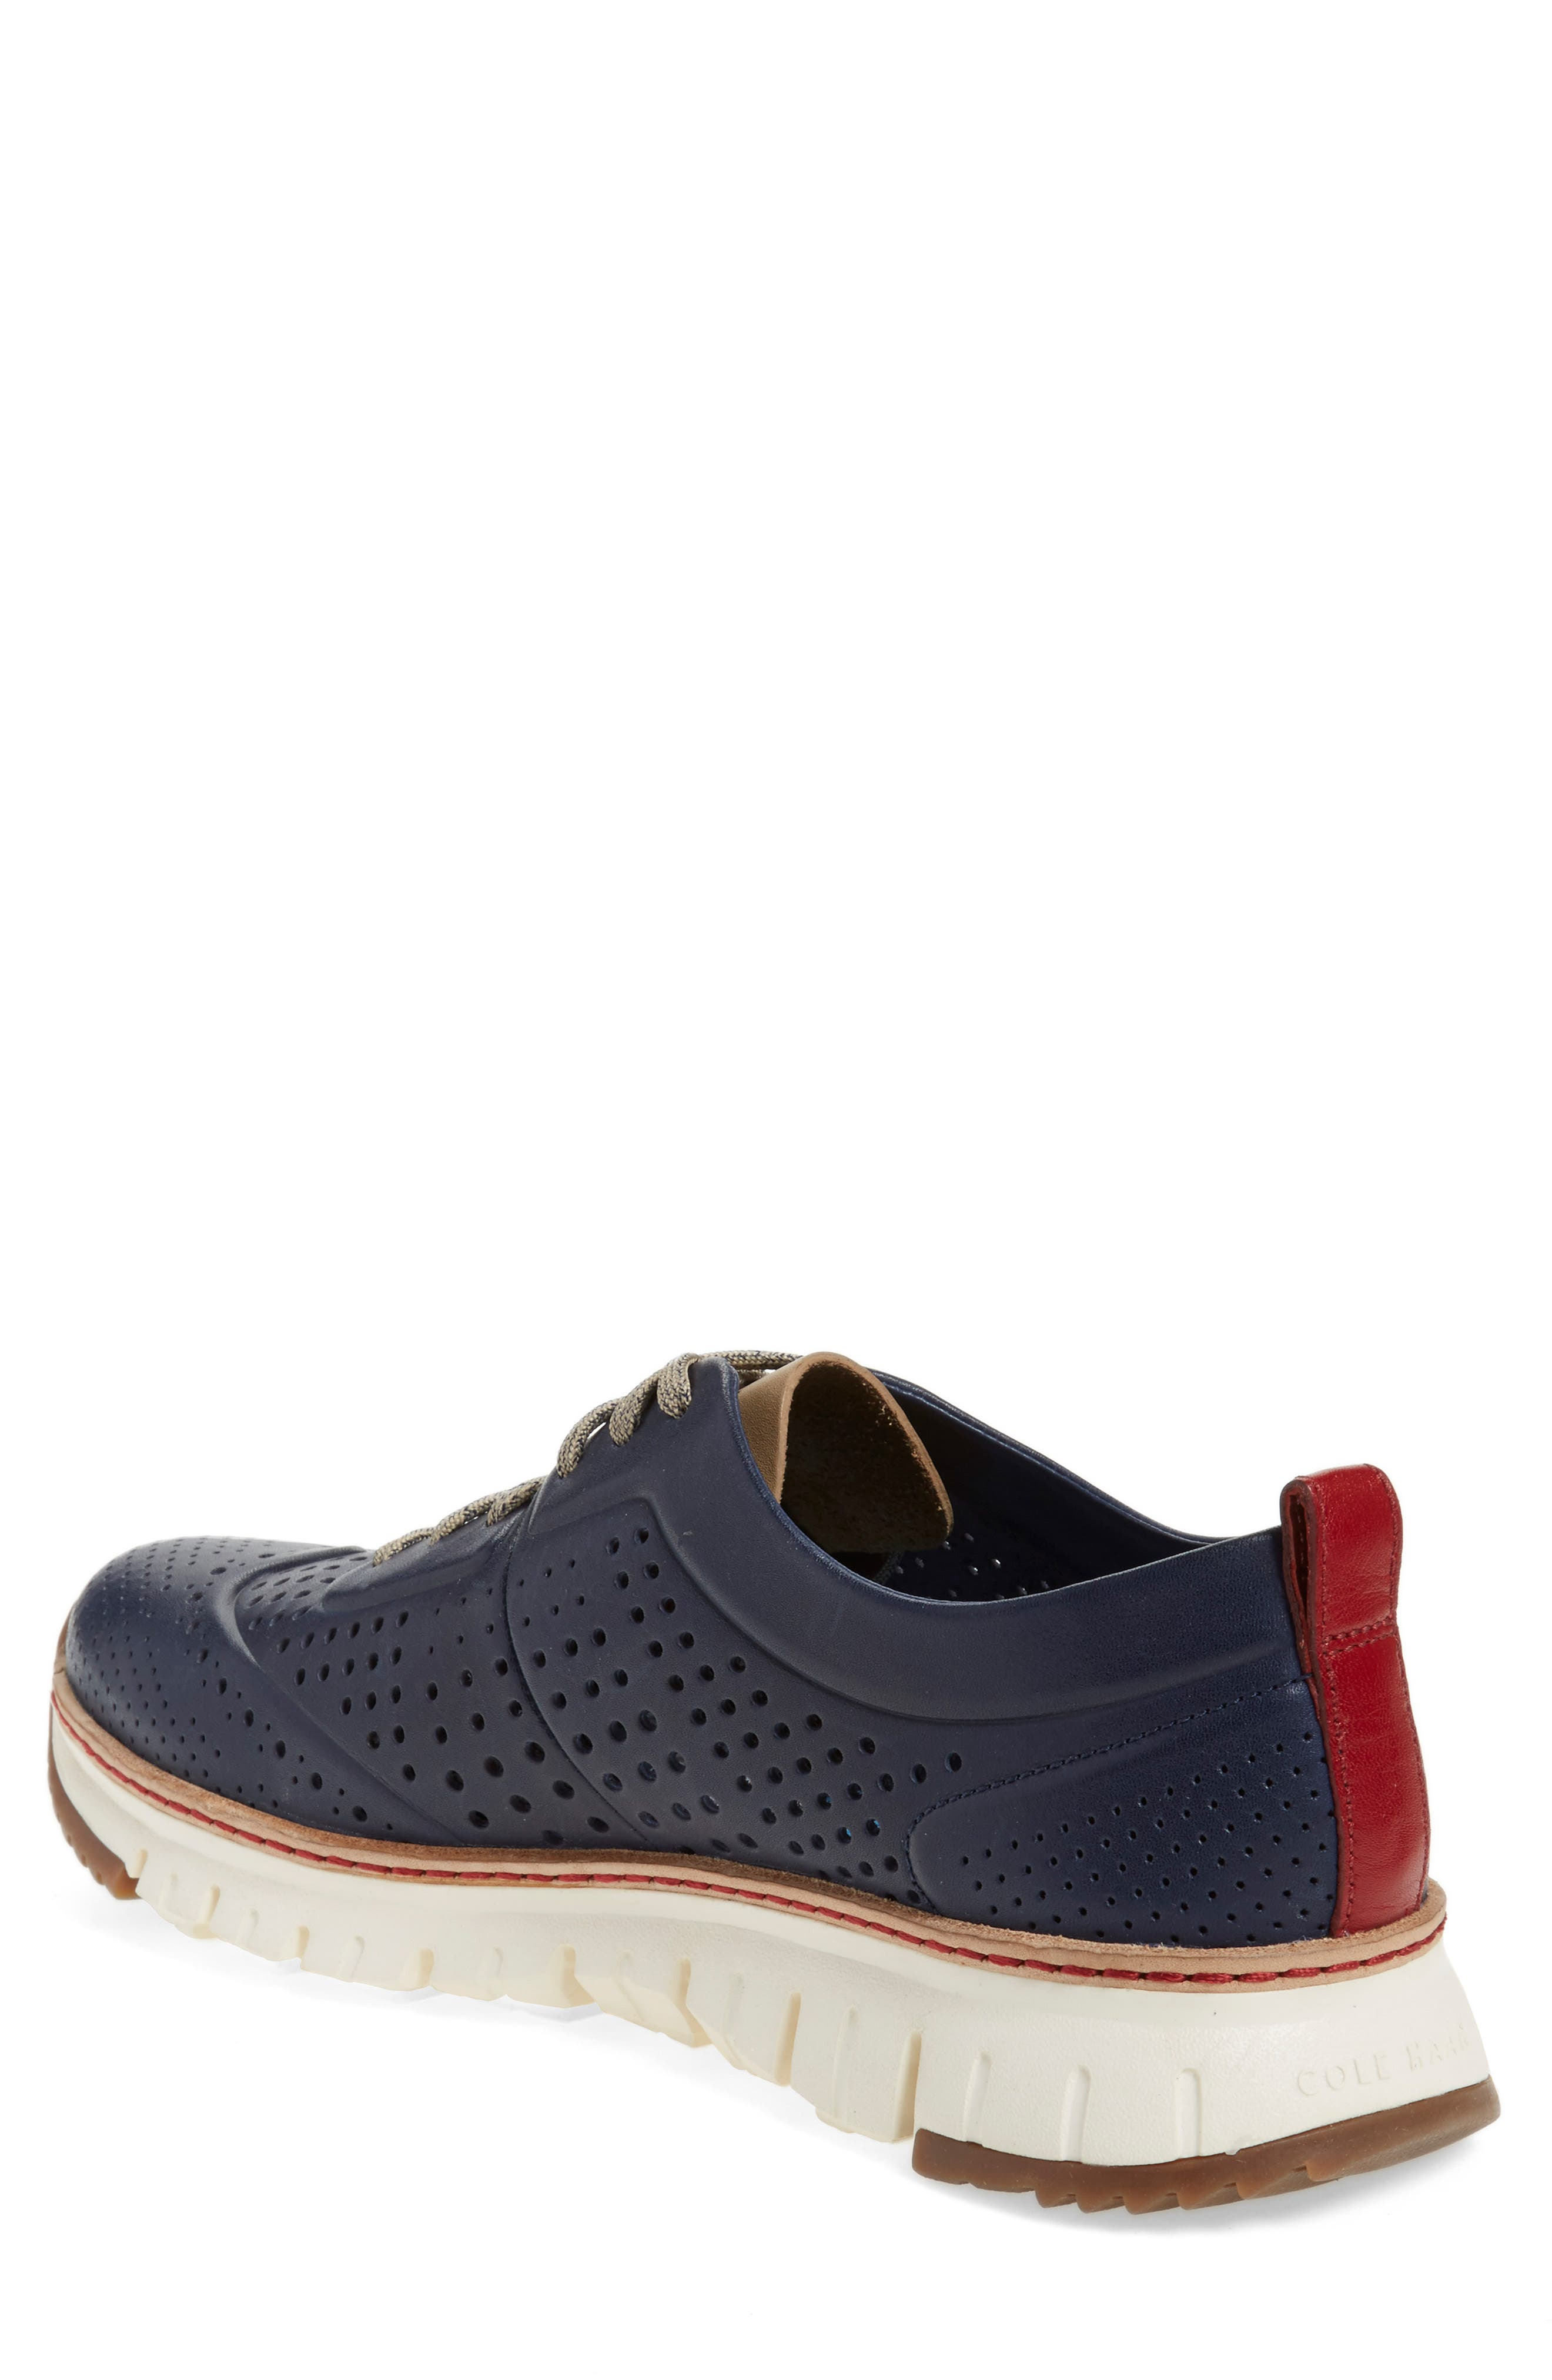 COLE HAAN,                             'ZerøGrand' Perforated Wingtip Sneaker,                             Alternate thumbnail 5, color,                             400